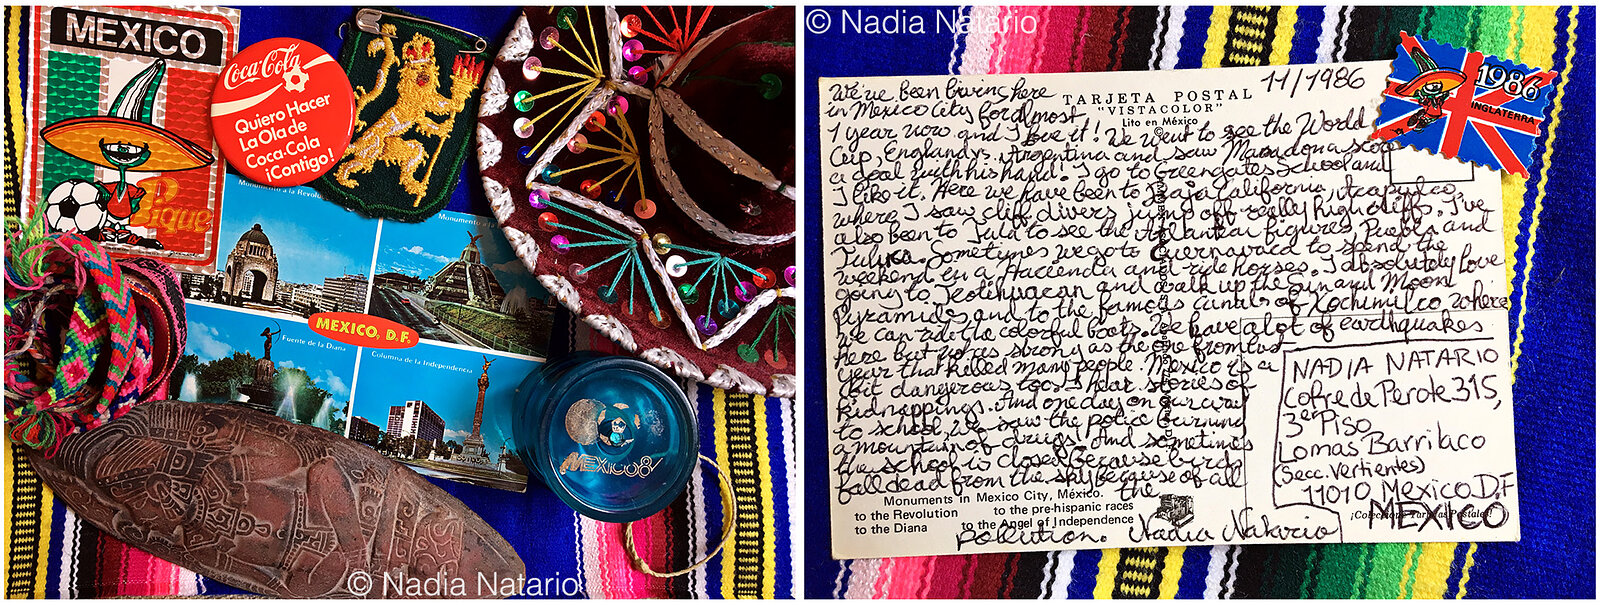 Postcards to Myself - Mexico, D.F, Mexico 1986